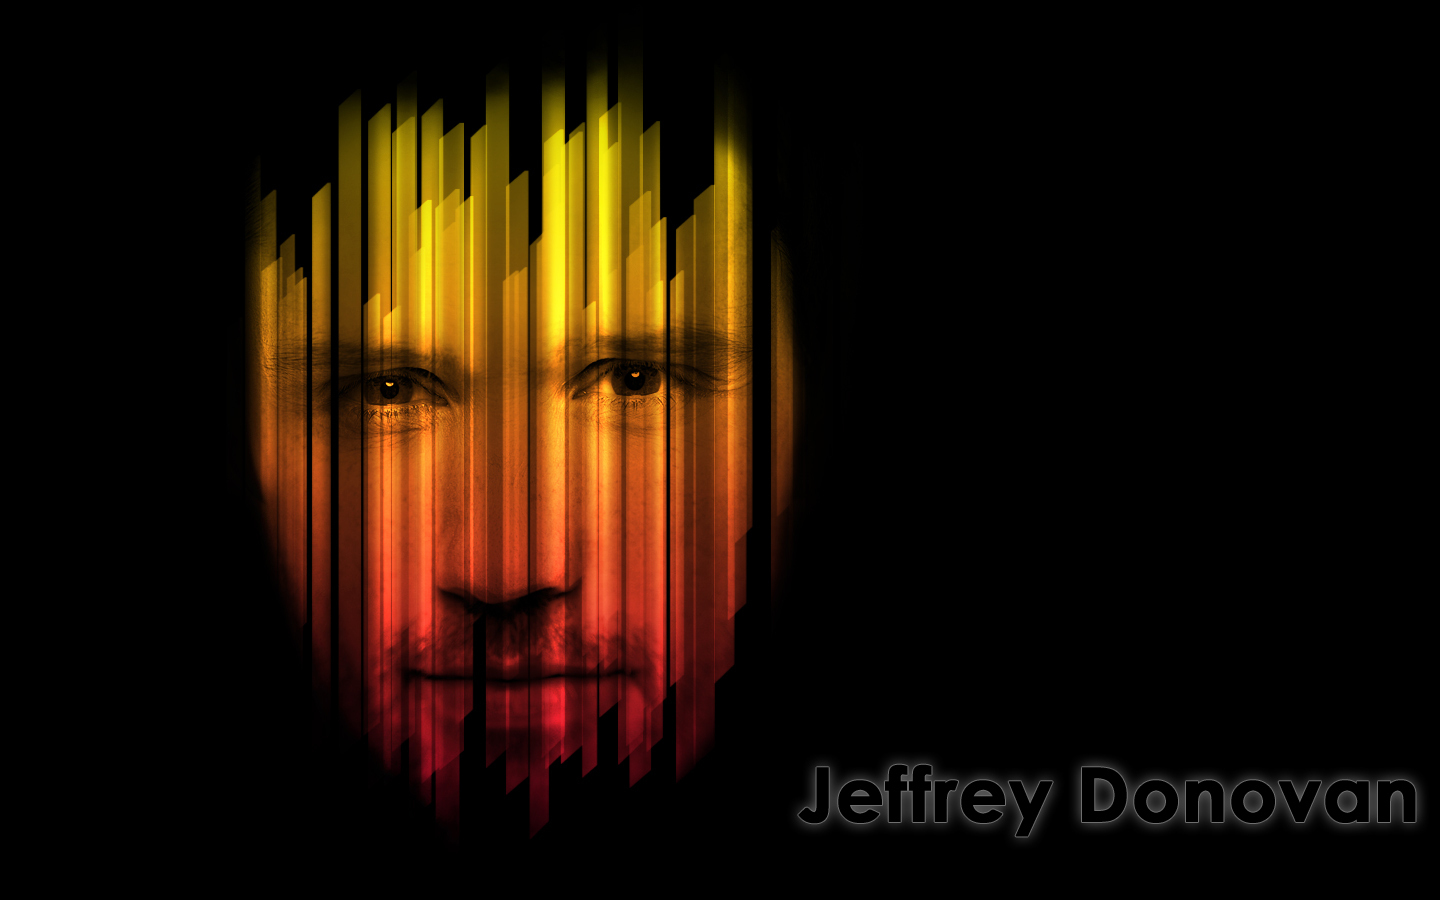 Jeffrey Donovan Retro Wallpaper - Black BG